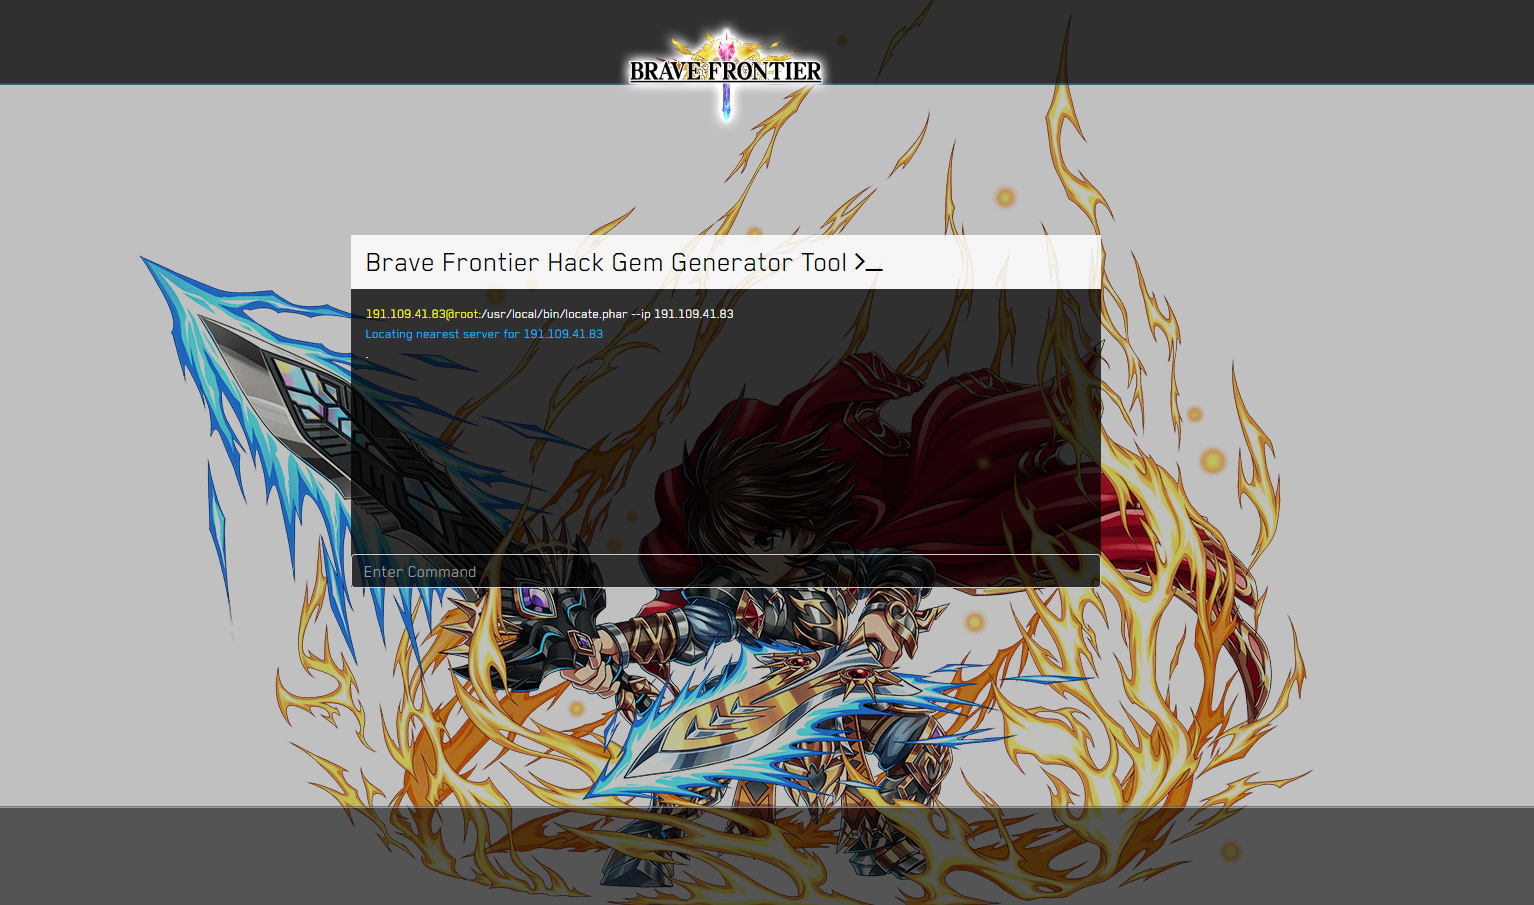 brave frontier hacked